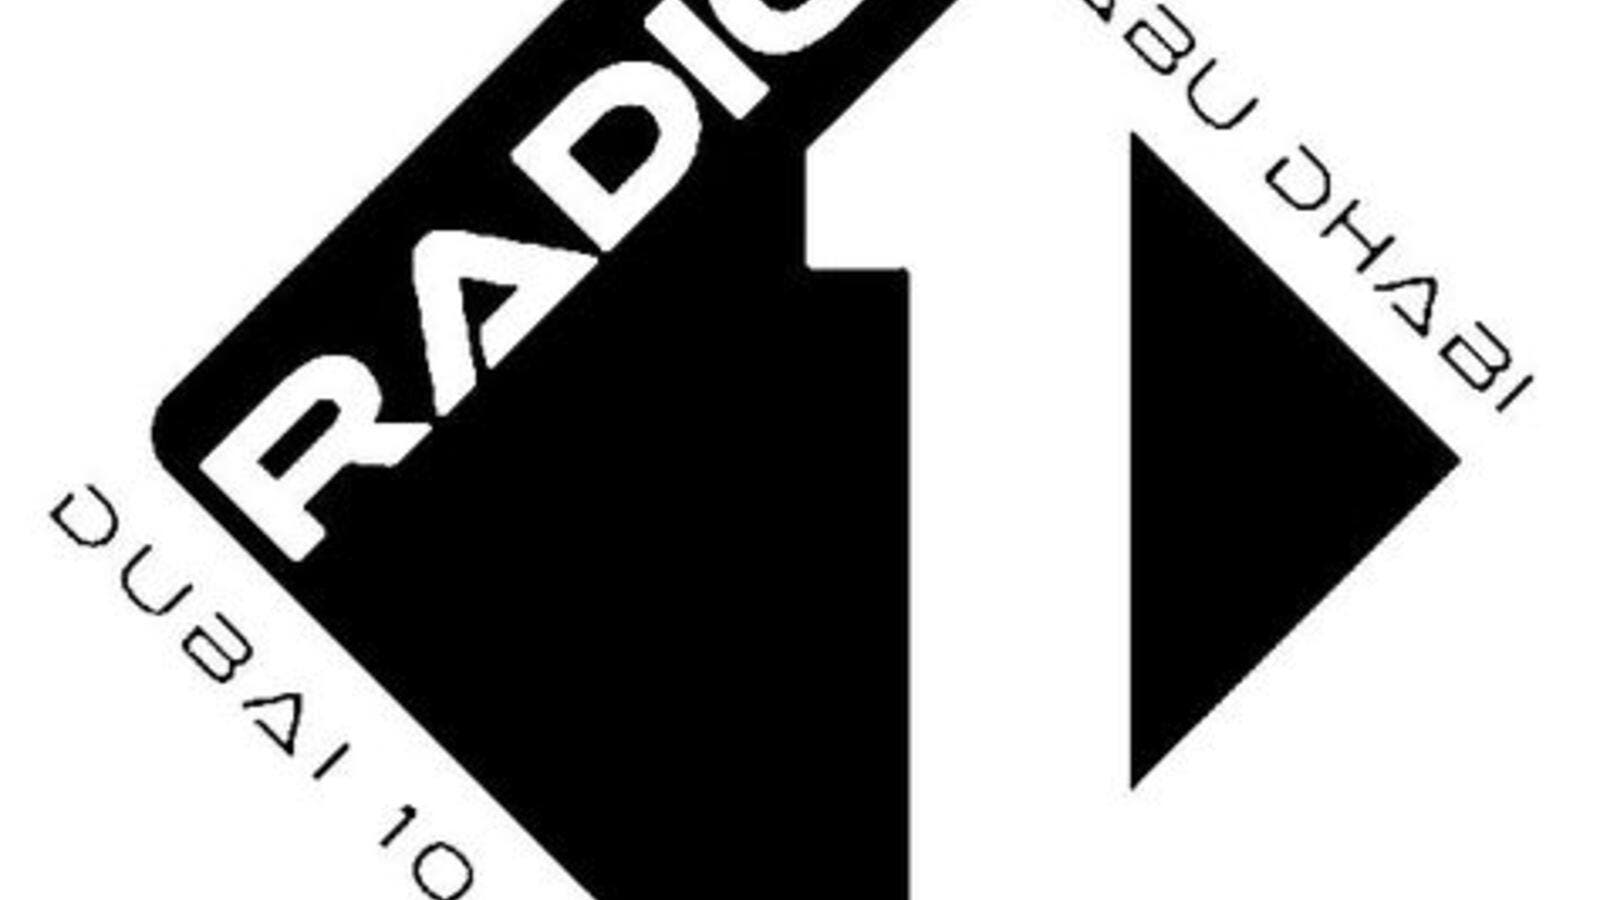 Listeners complained last week that the stations were off-air, with some claiming an Abu Dhabi classical music station was playing instead. (Campaign.me)